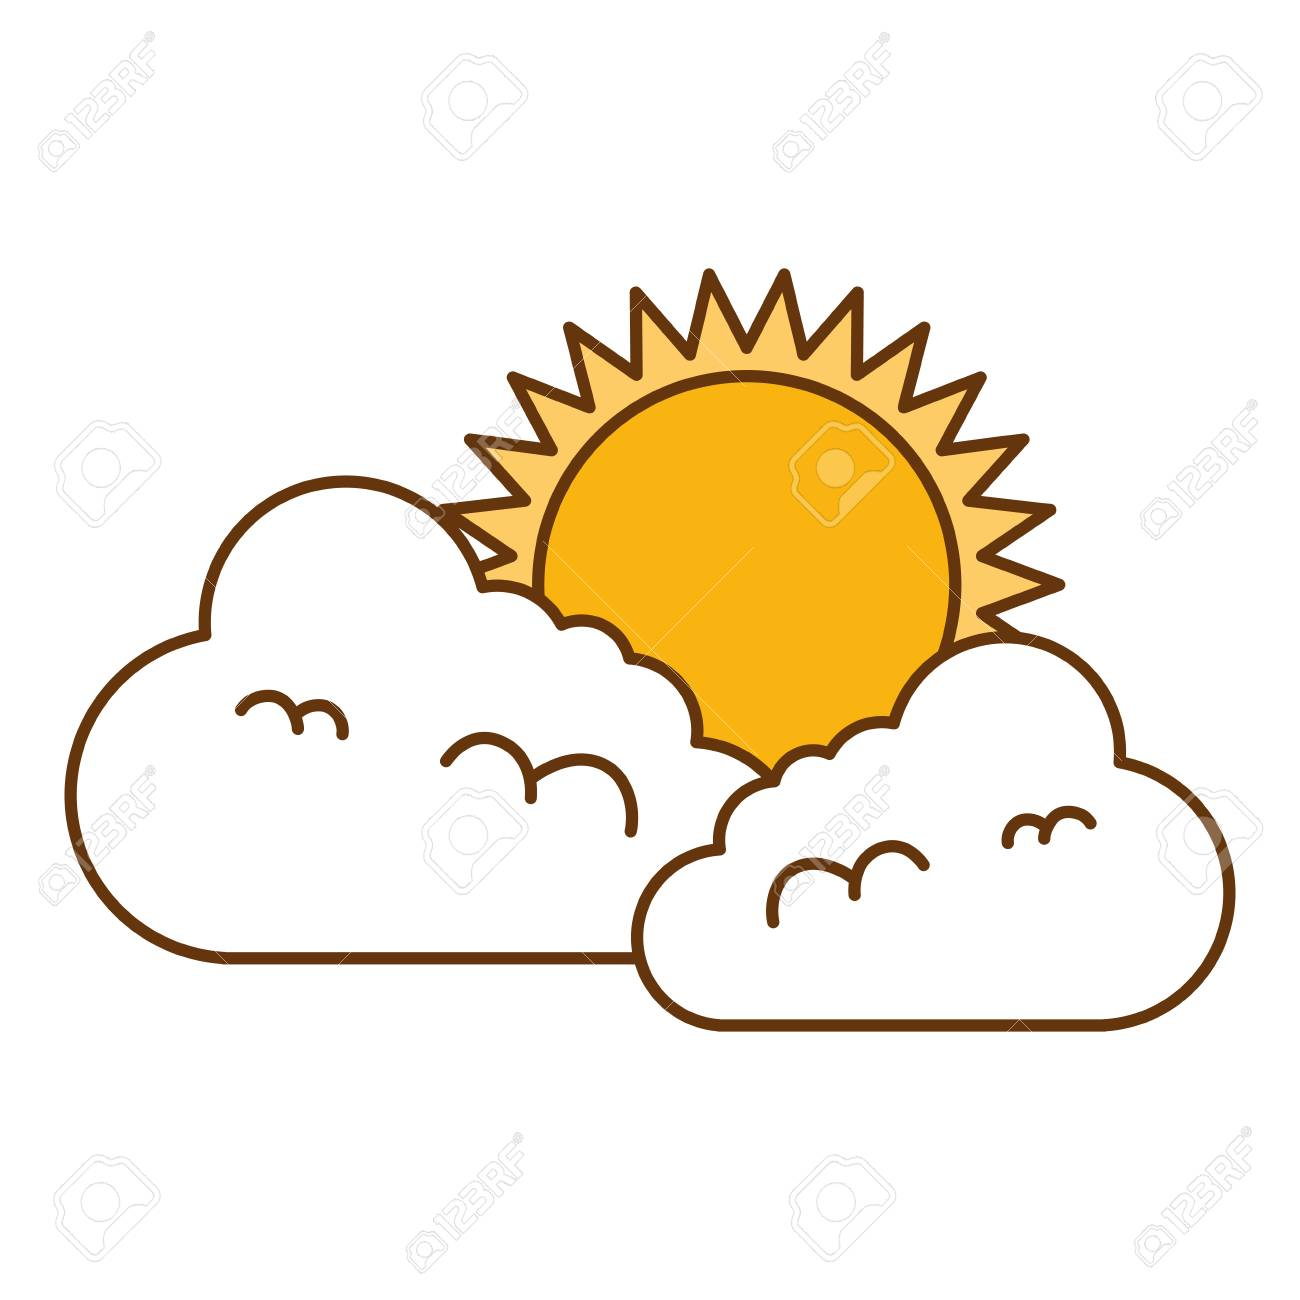 hight resolution of climate cloud with sun vector illustration design stock vector 99244003